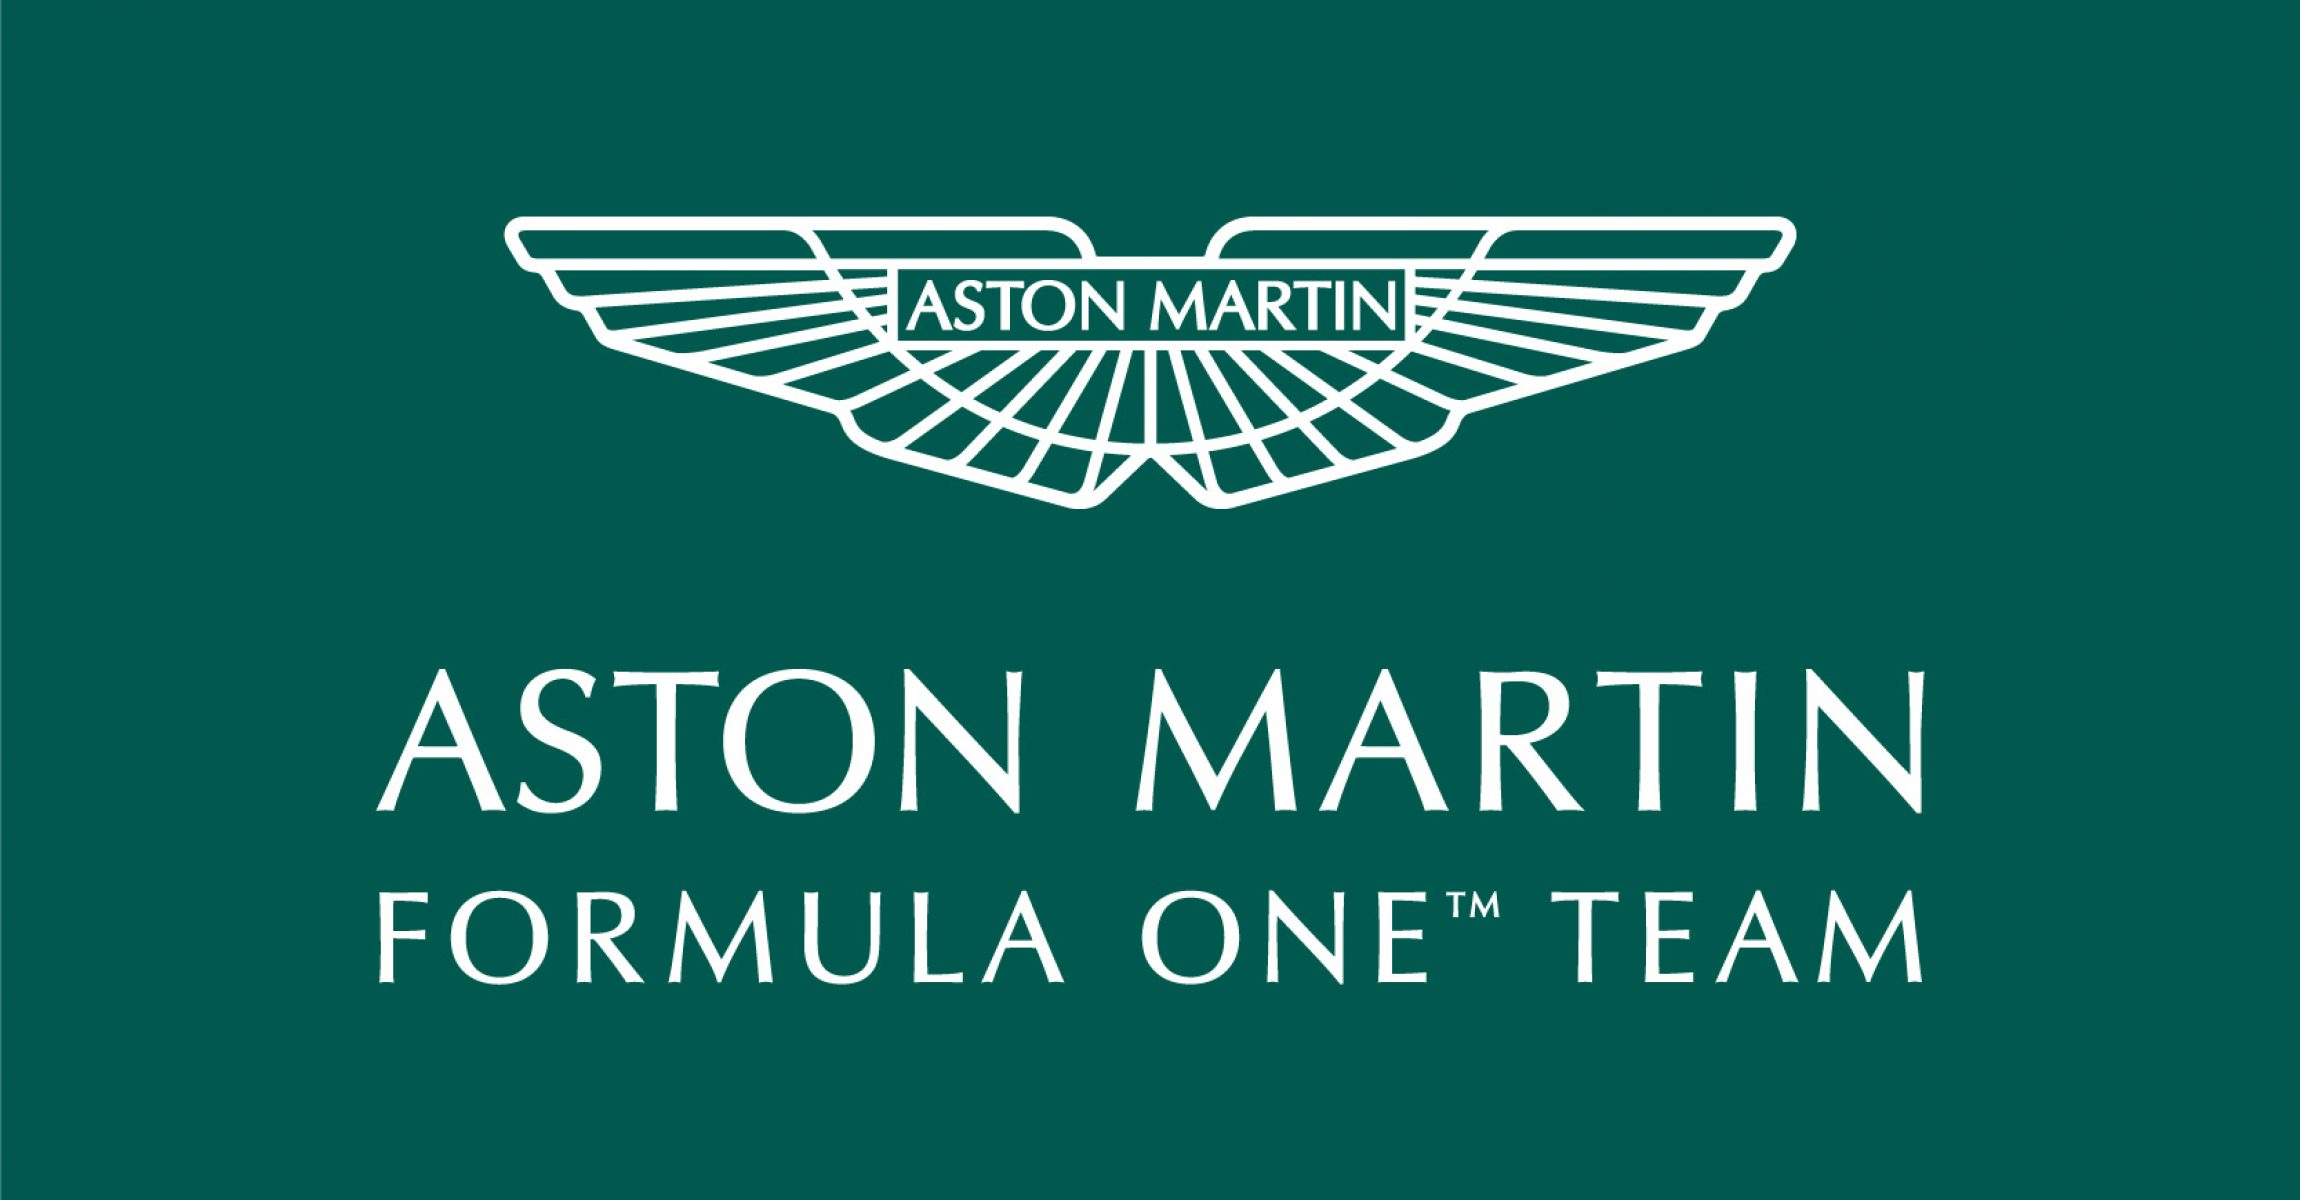 Aston Martin F1 Team Logo